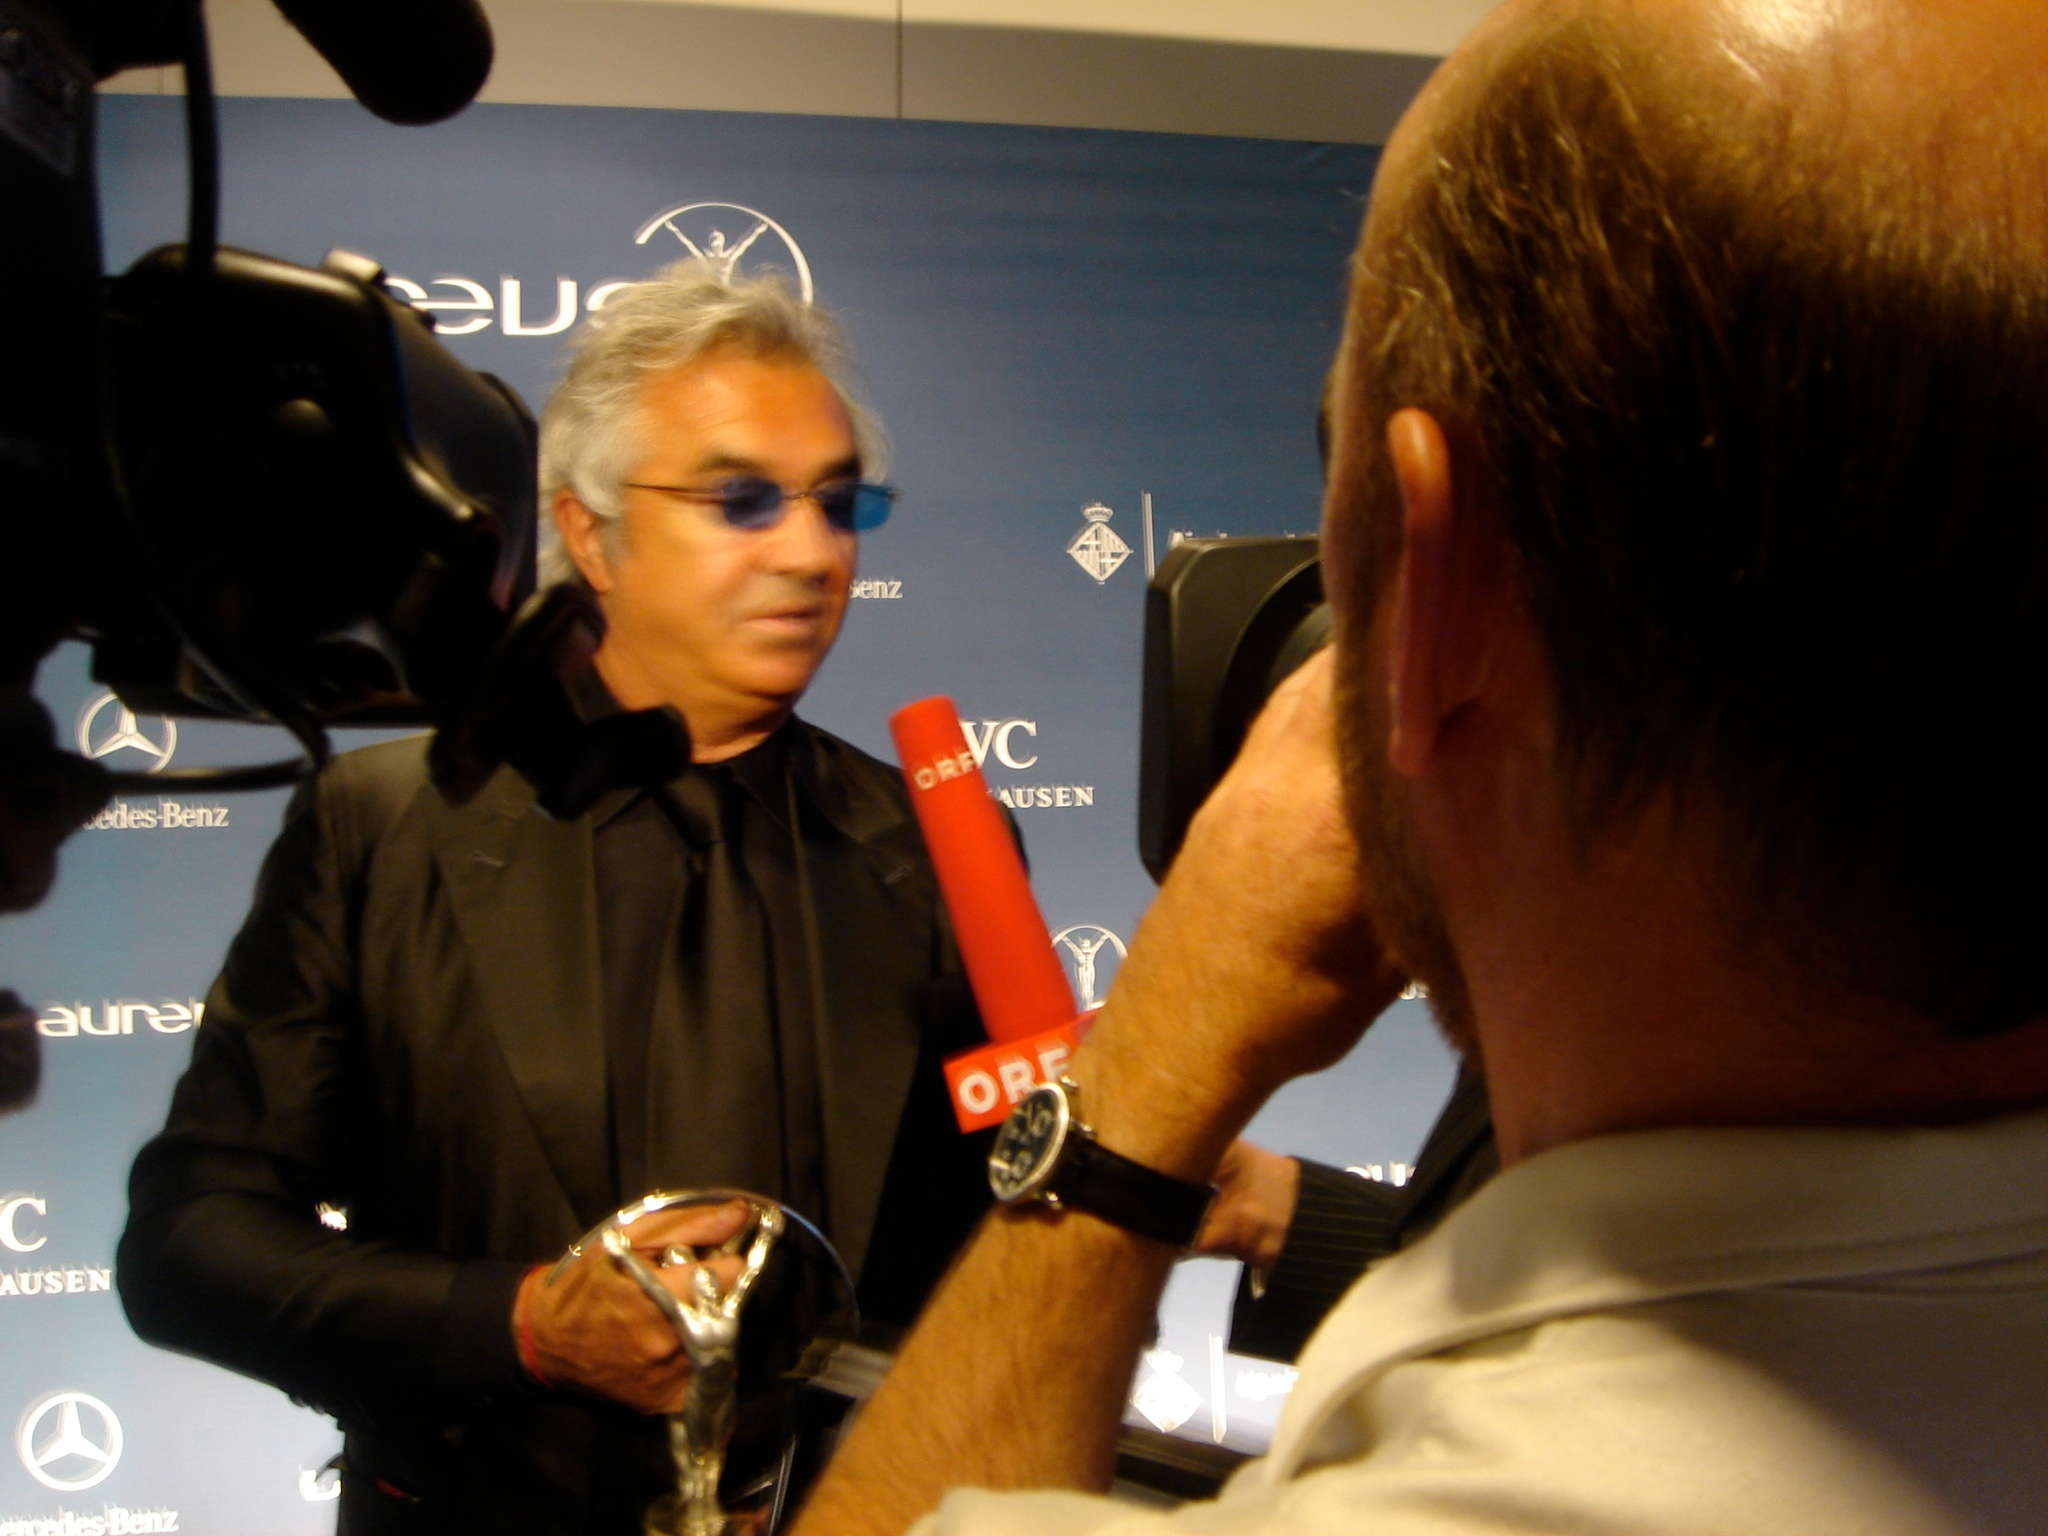 Laureus Sports Awards: Flavio Briatore